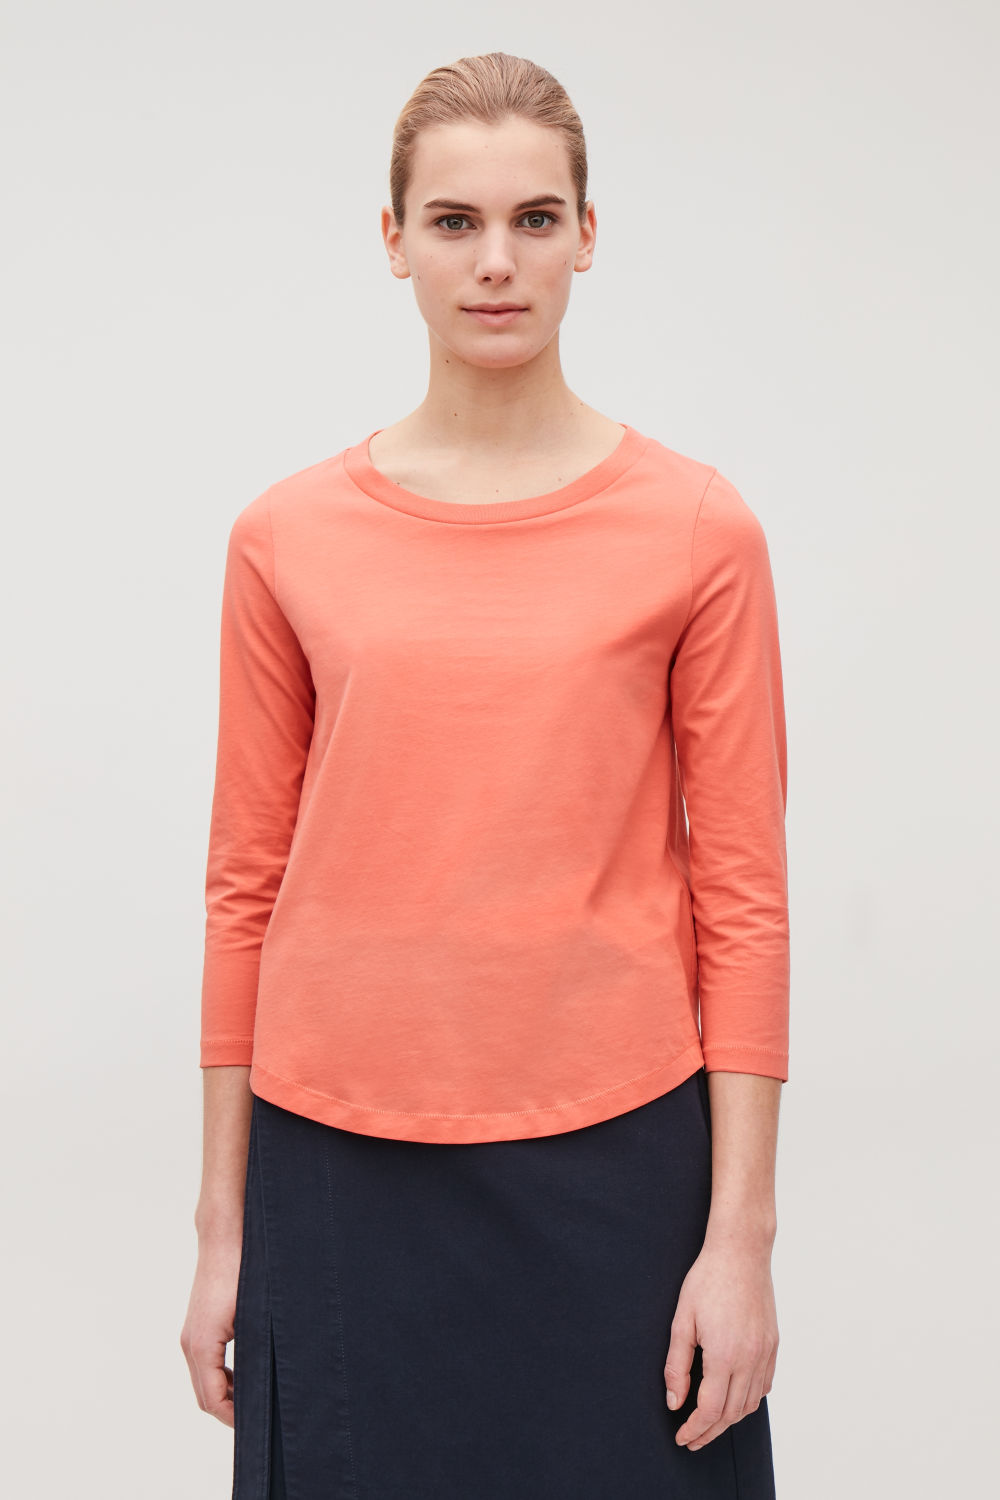 de0c6aefb37f7 ¾-SLEEVED COTTON TOP ...